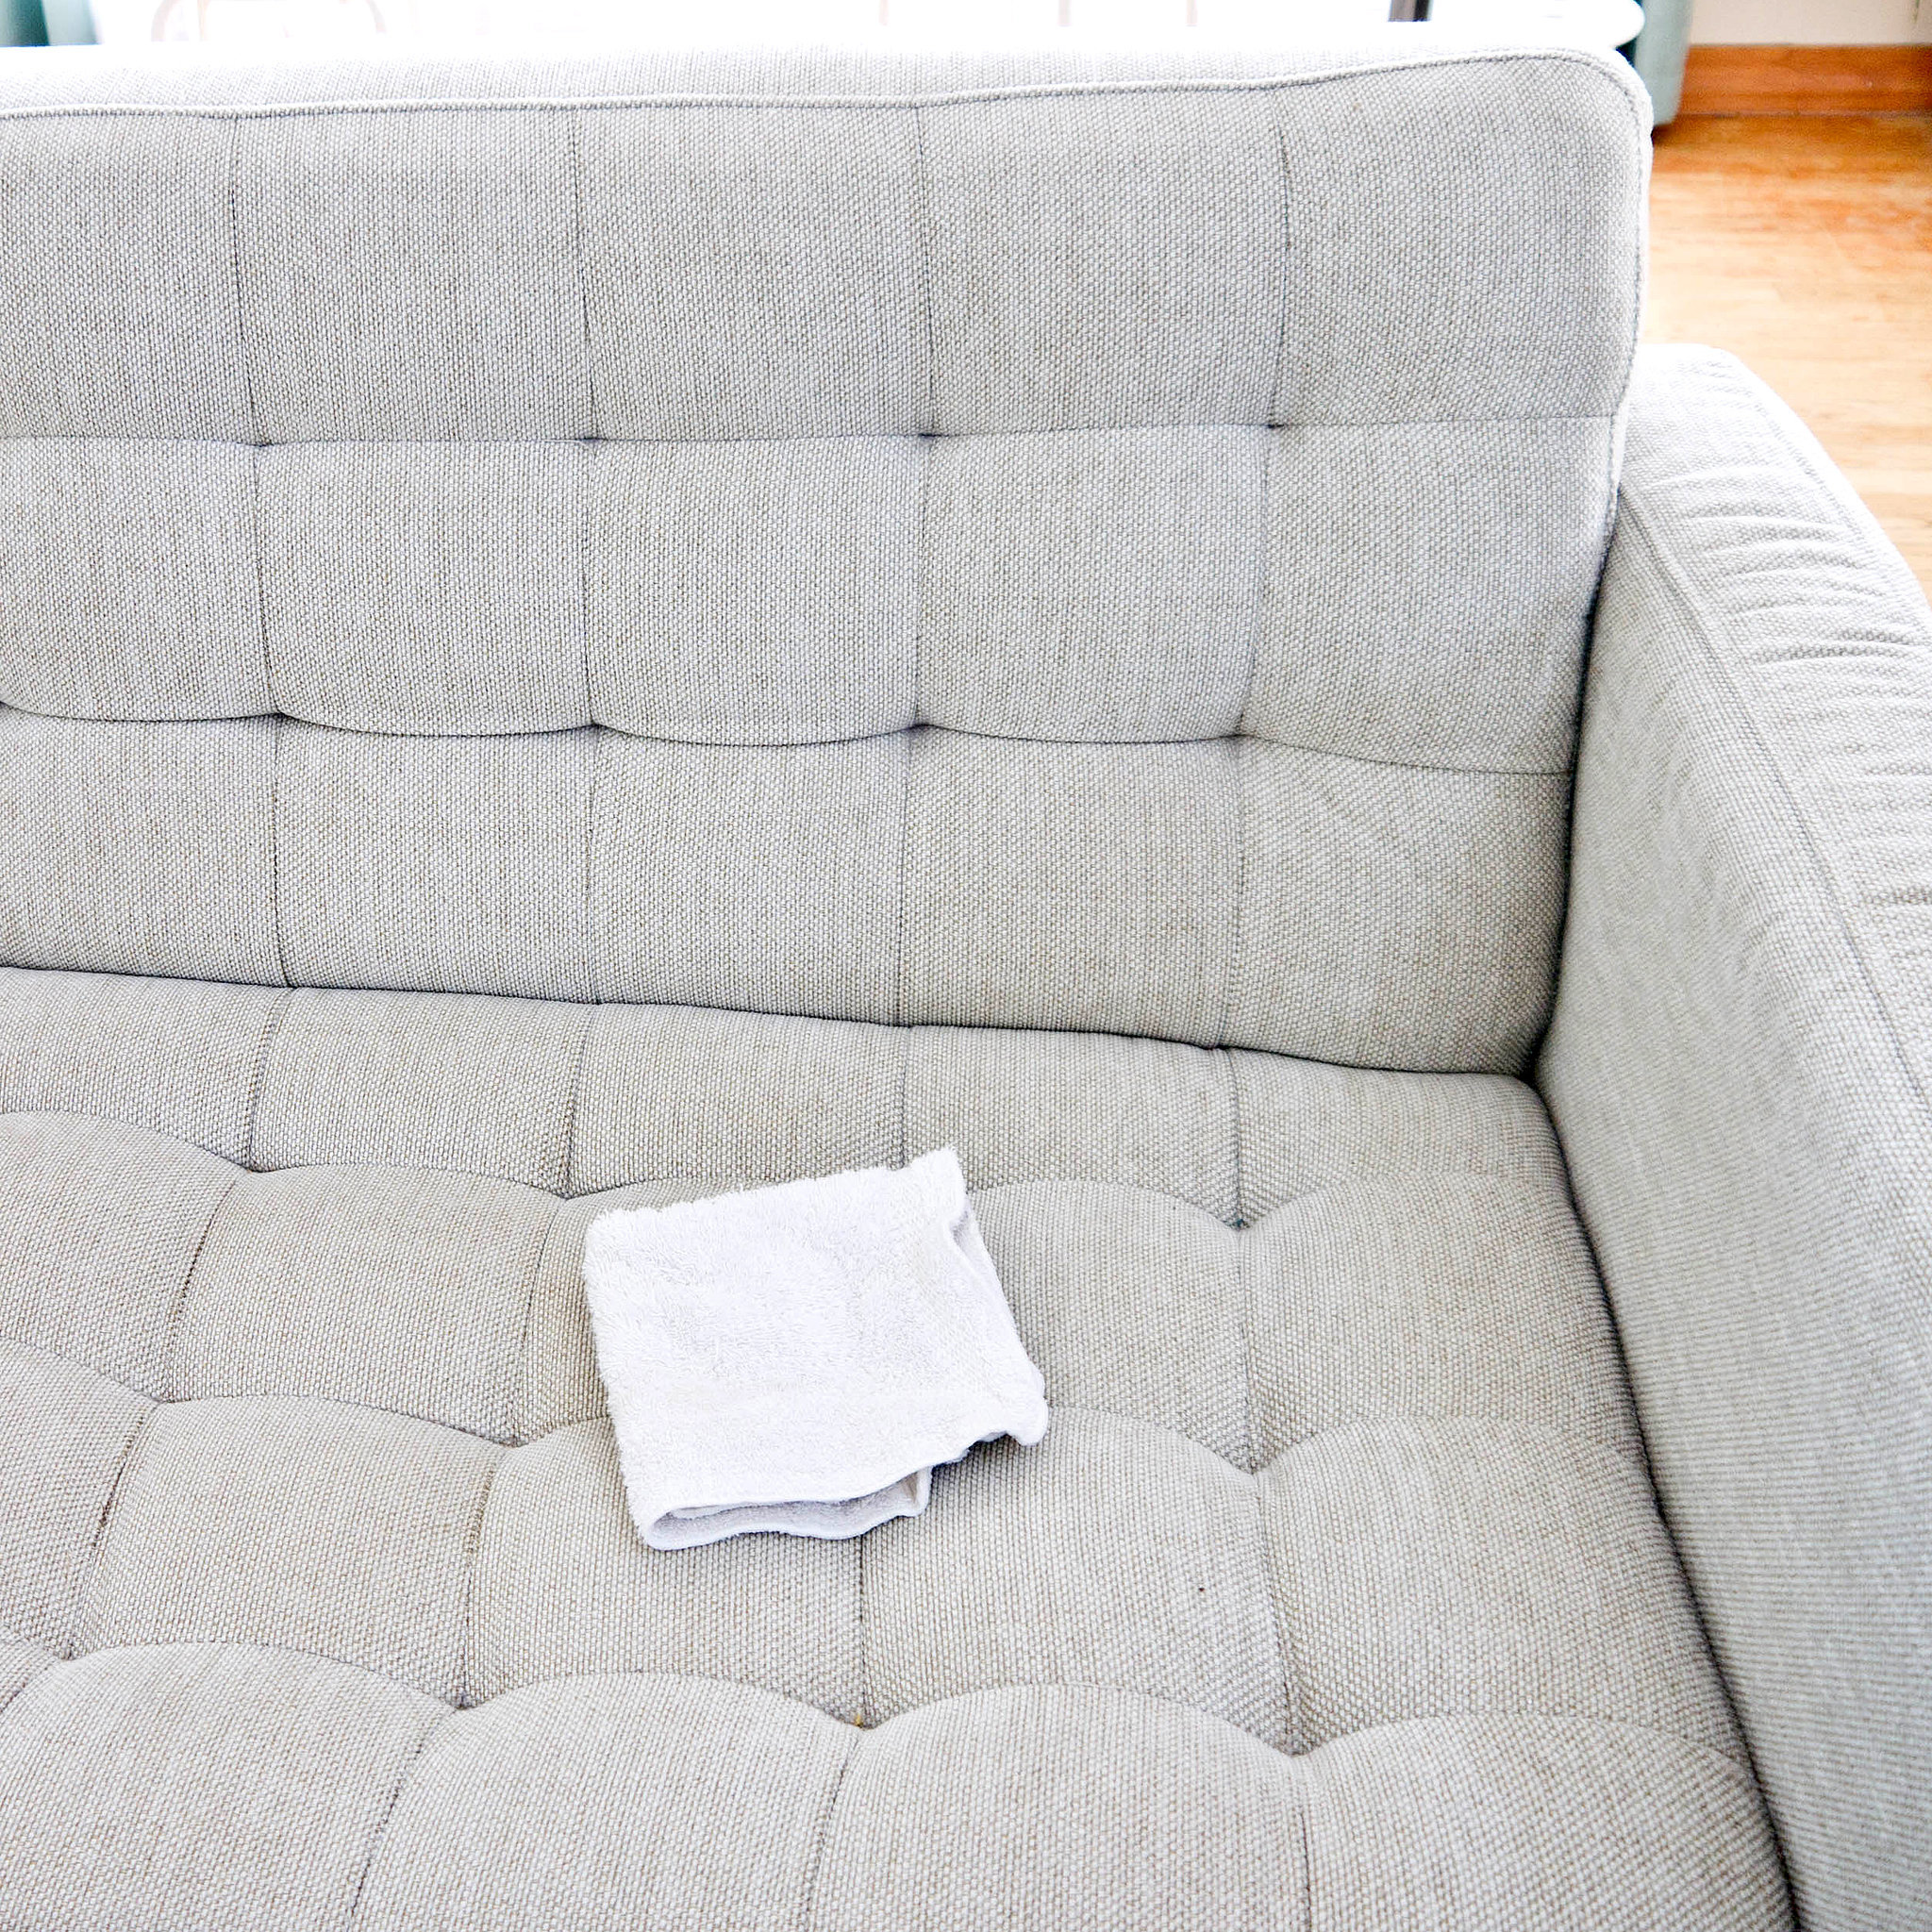 Sofa Fabric How To Clean A Natural Fabric Couch Popsugar Smart Living